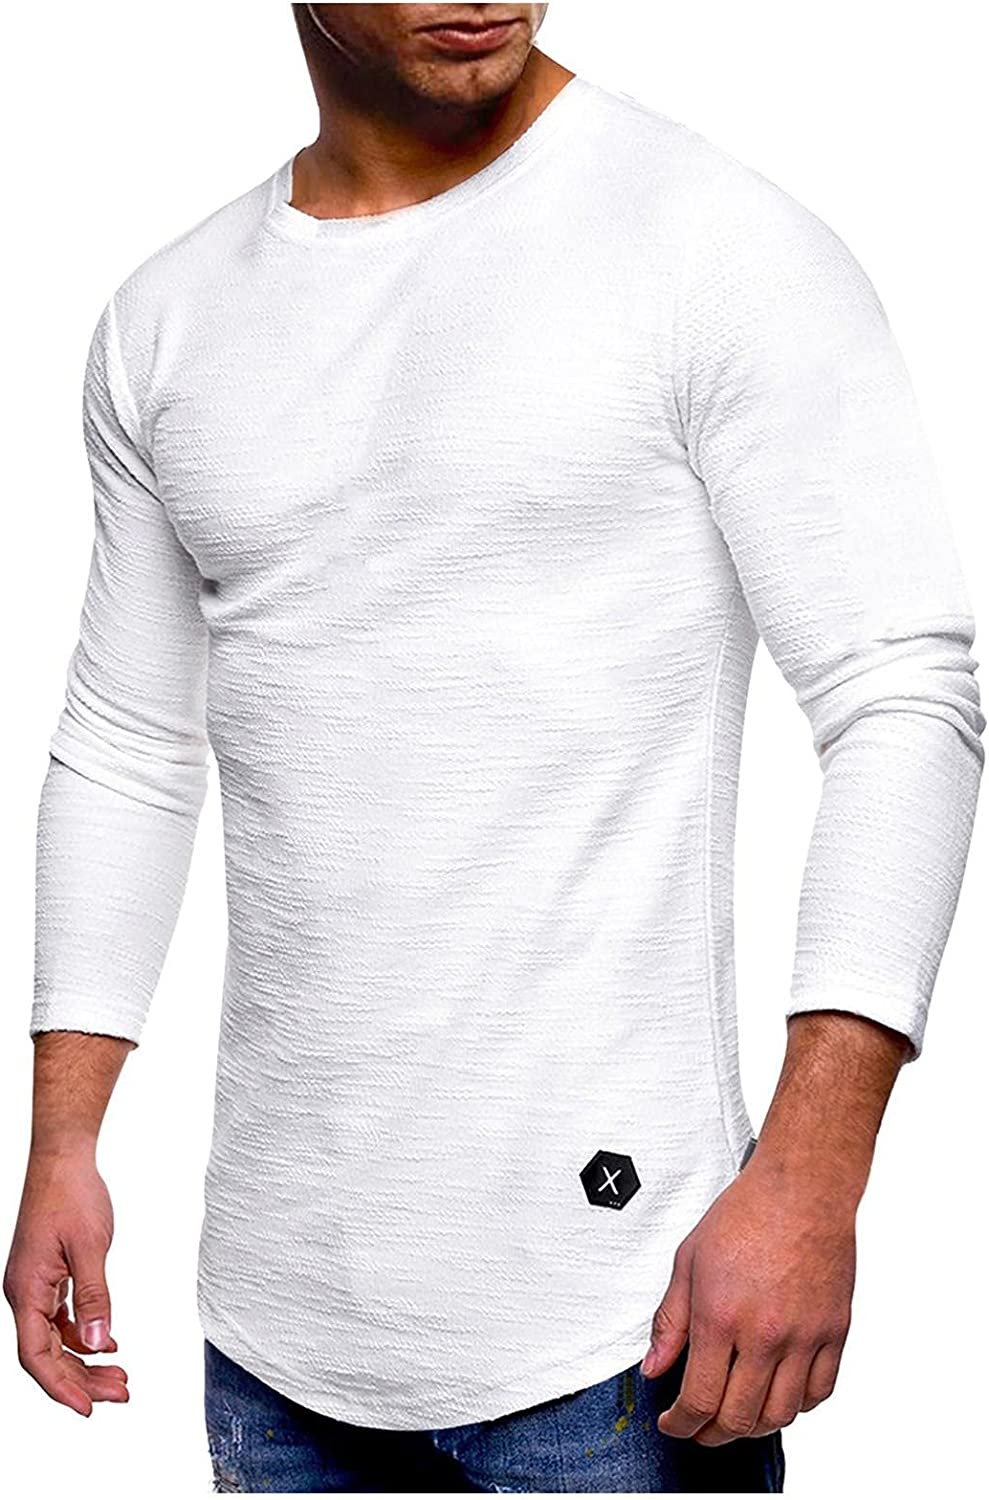 Long Sleeve Tee Shirts for Men Fashion Workout Gym Crewneck Sweatshirts Sport Pullover Muscle T Shirts Tops